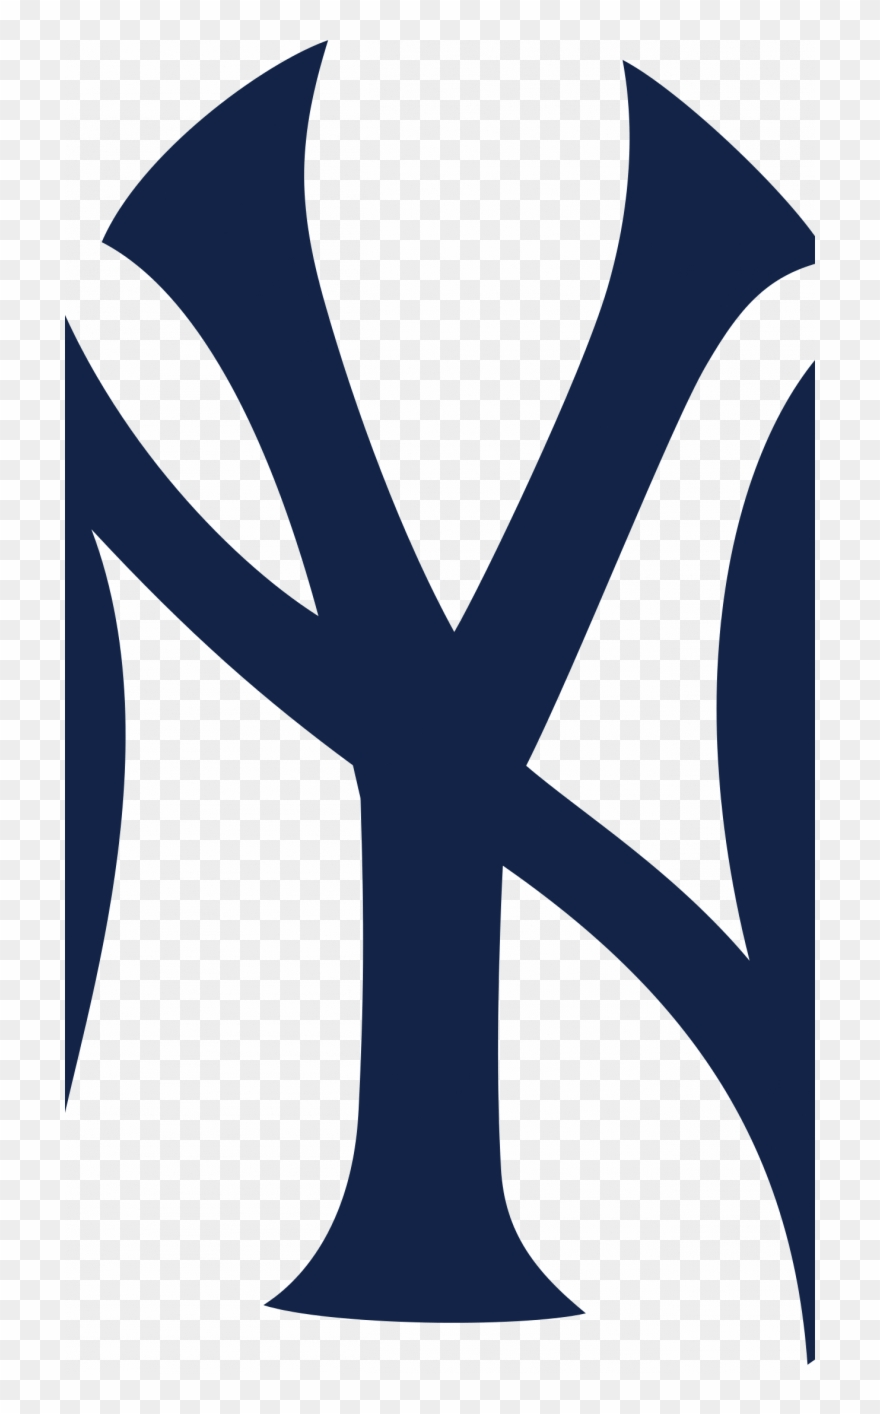 Iphone 8 Yankees Wallpaper Logos And Uniforms Of The New